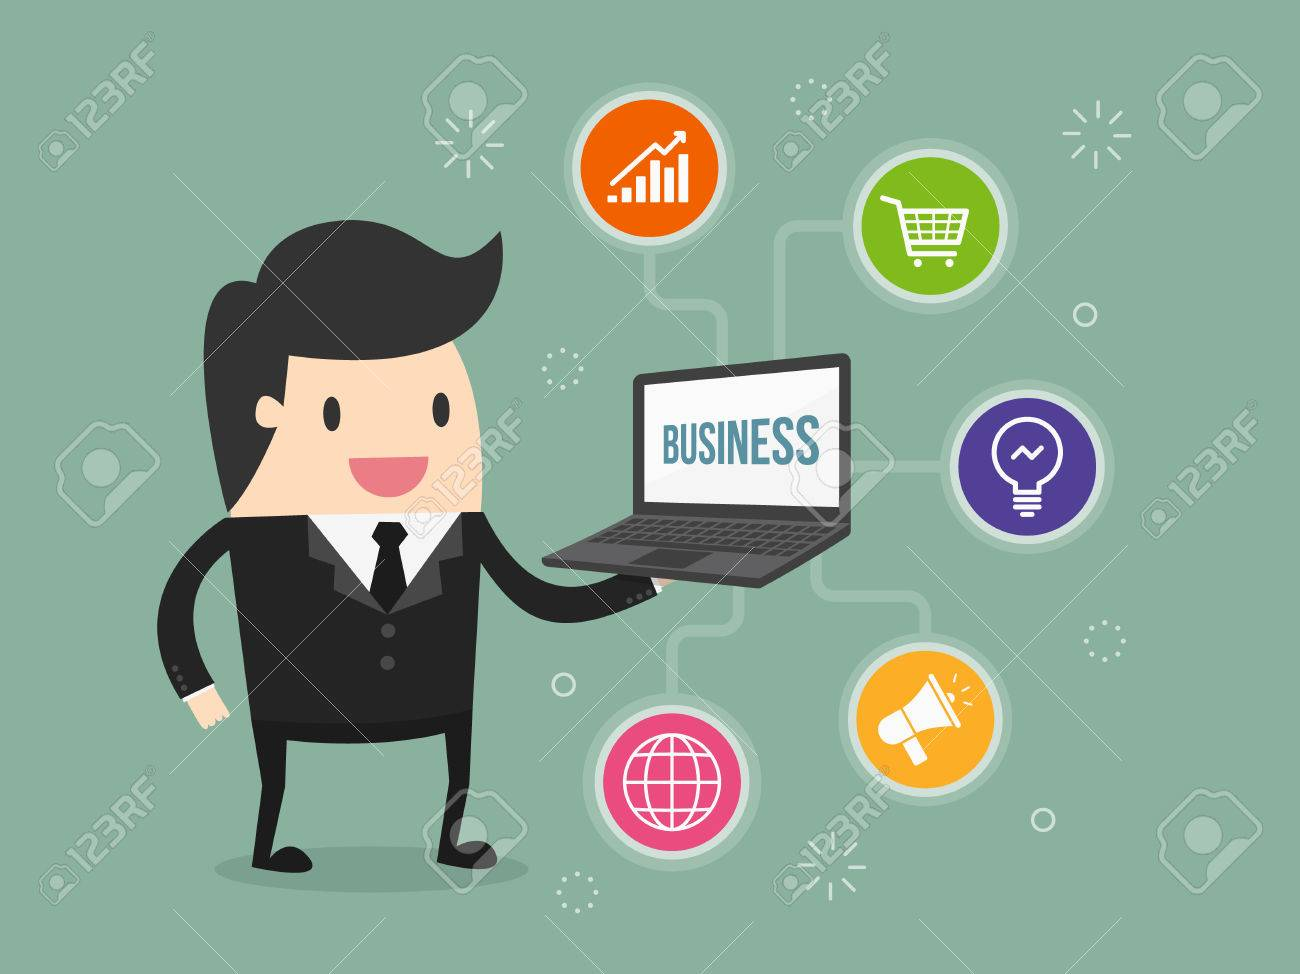 businessman holding laptop with business icon - 54429132